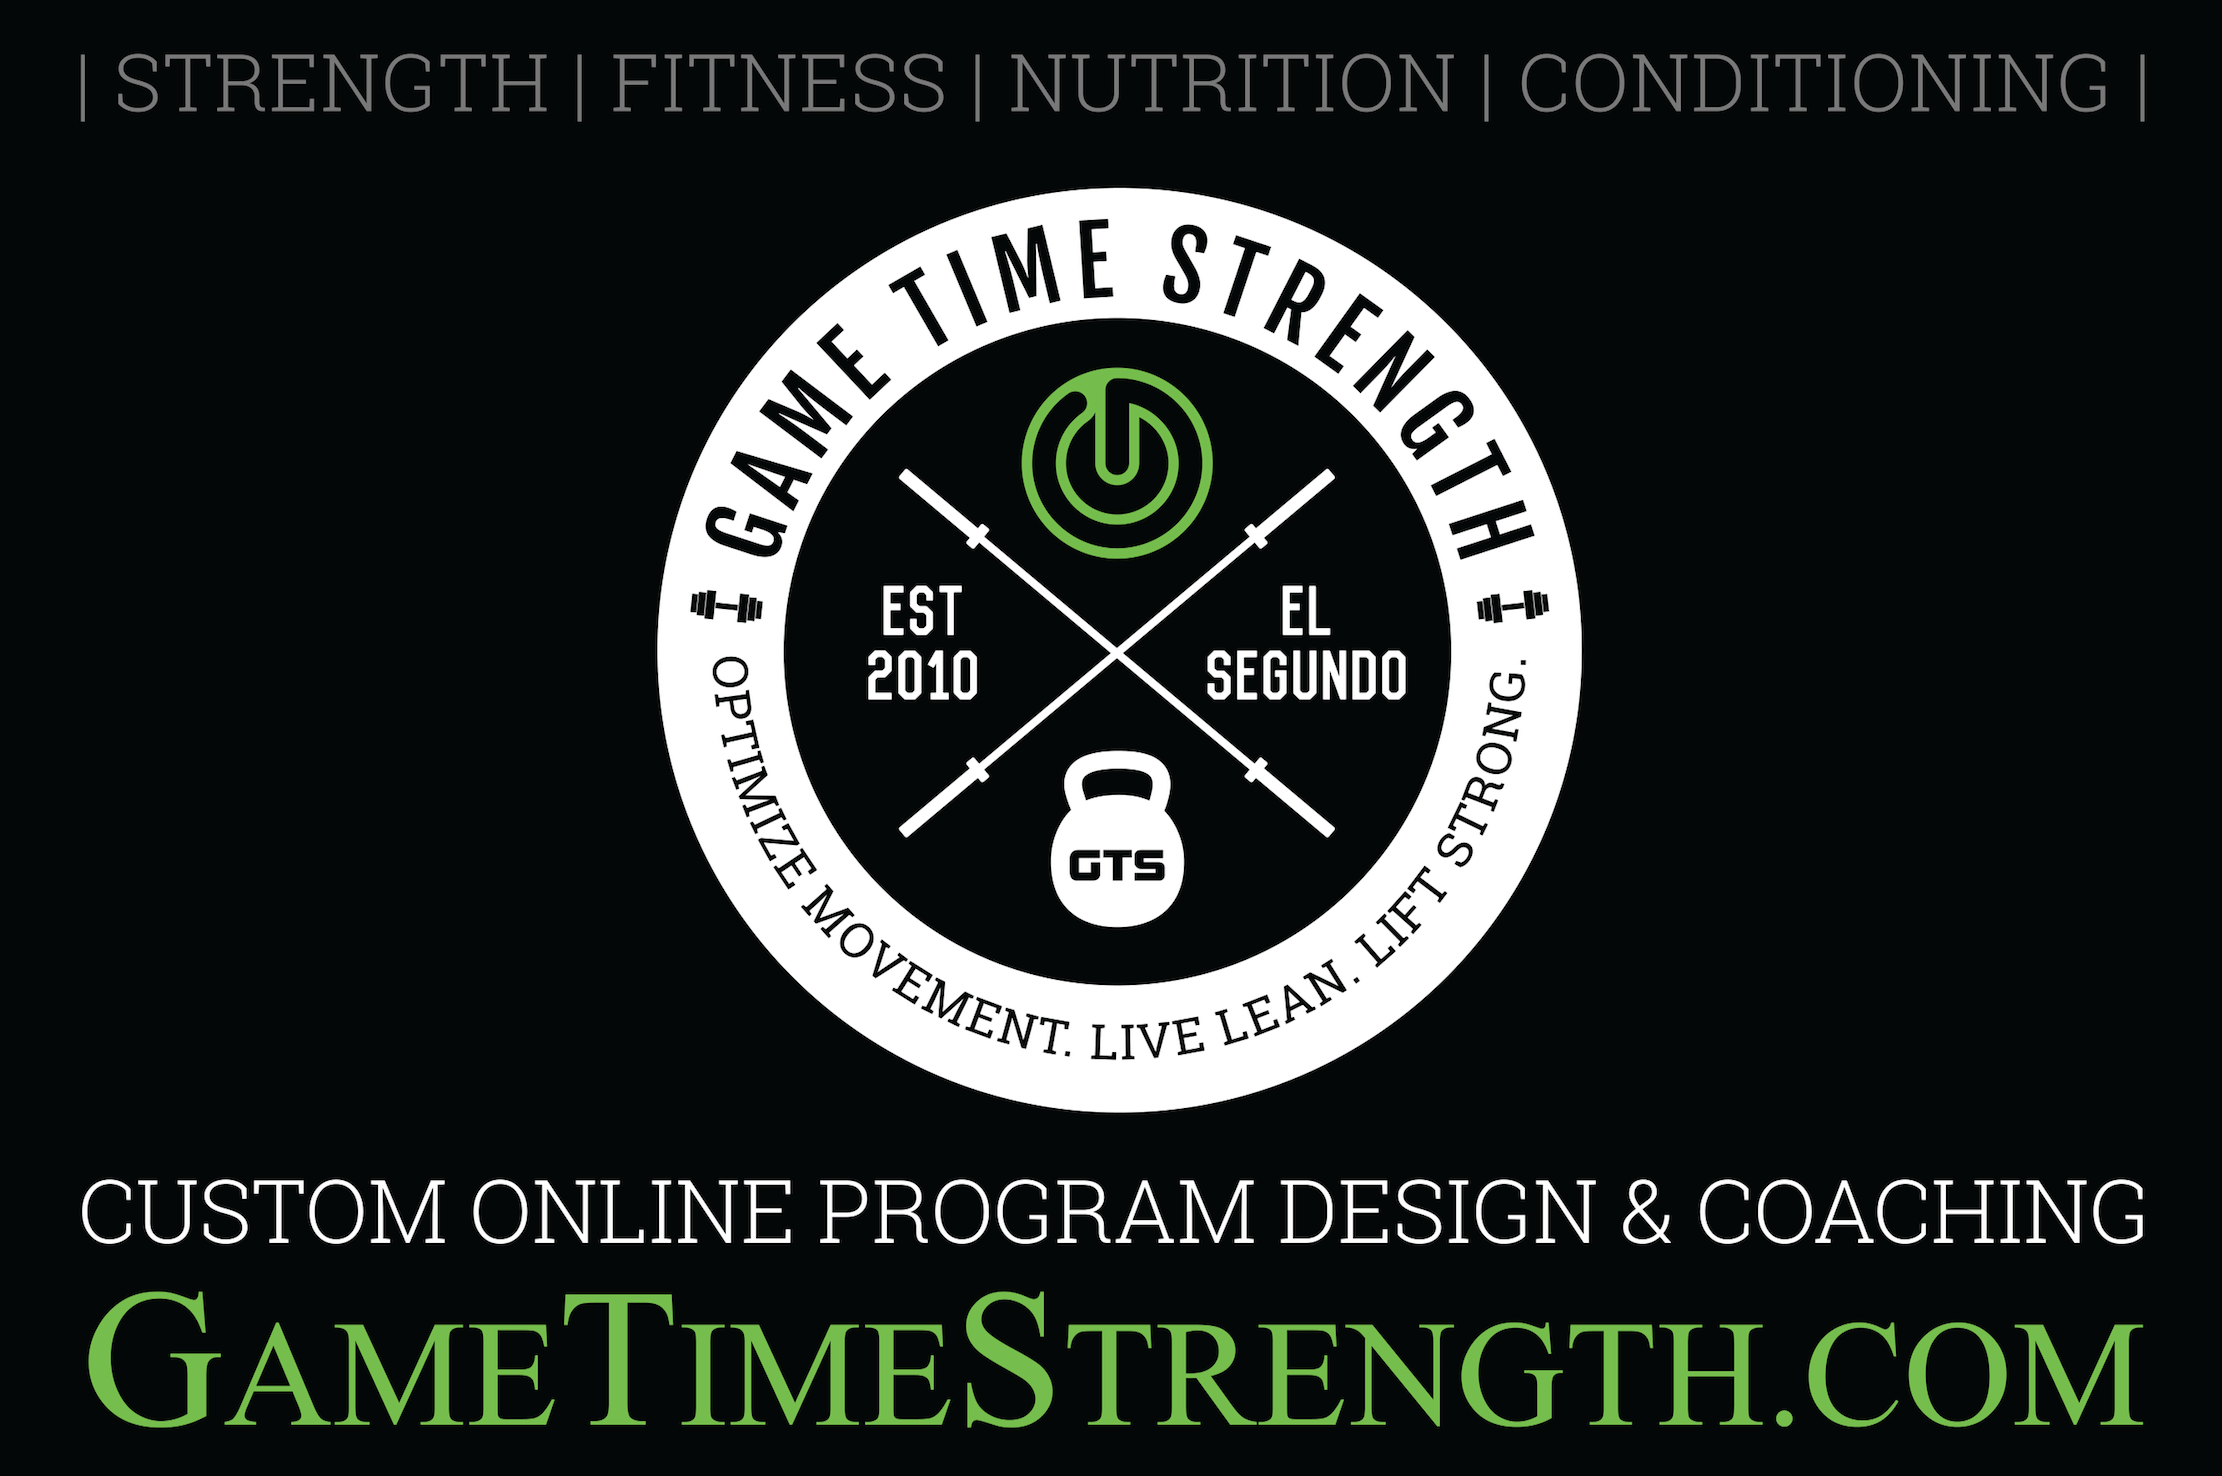 GTS Custom Online Program Design & Coaching